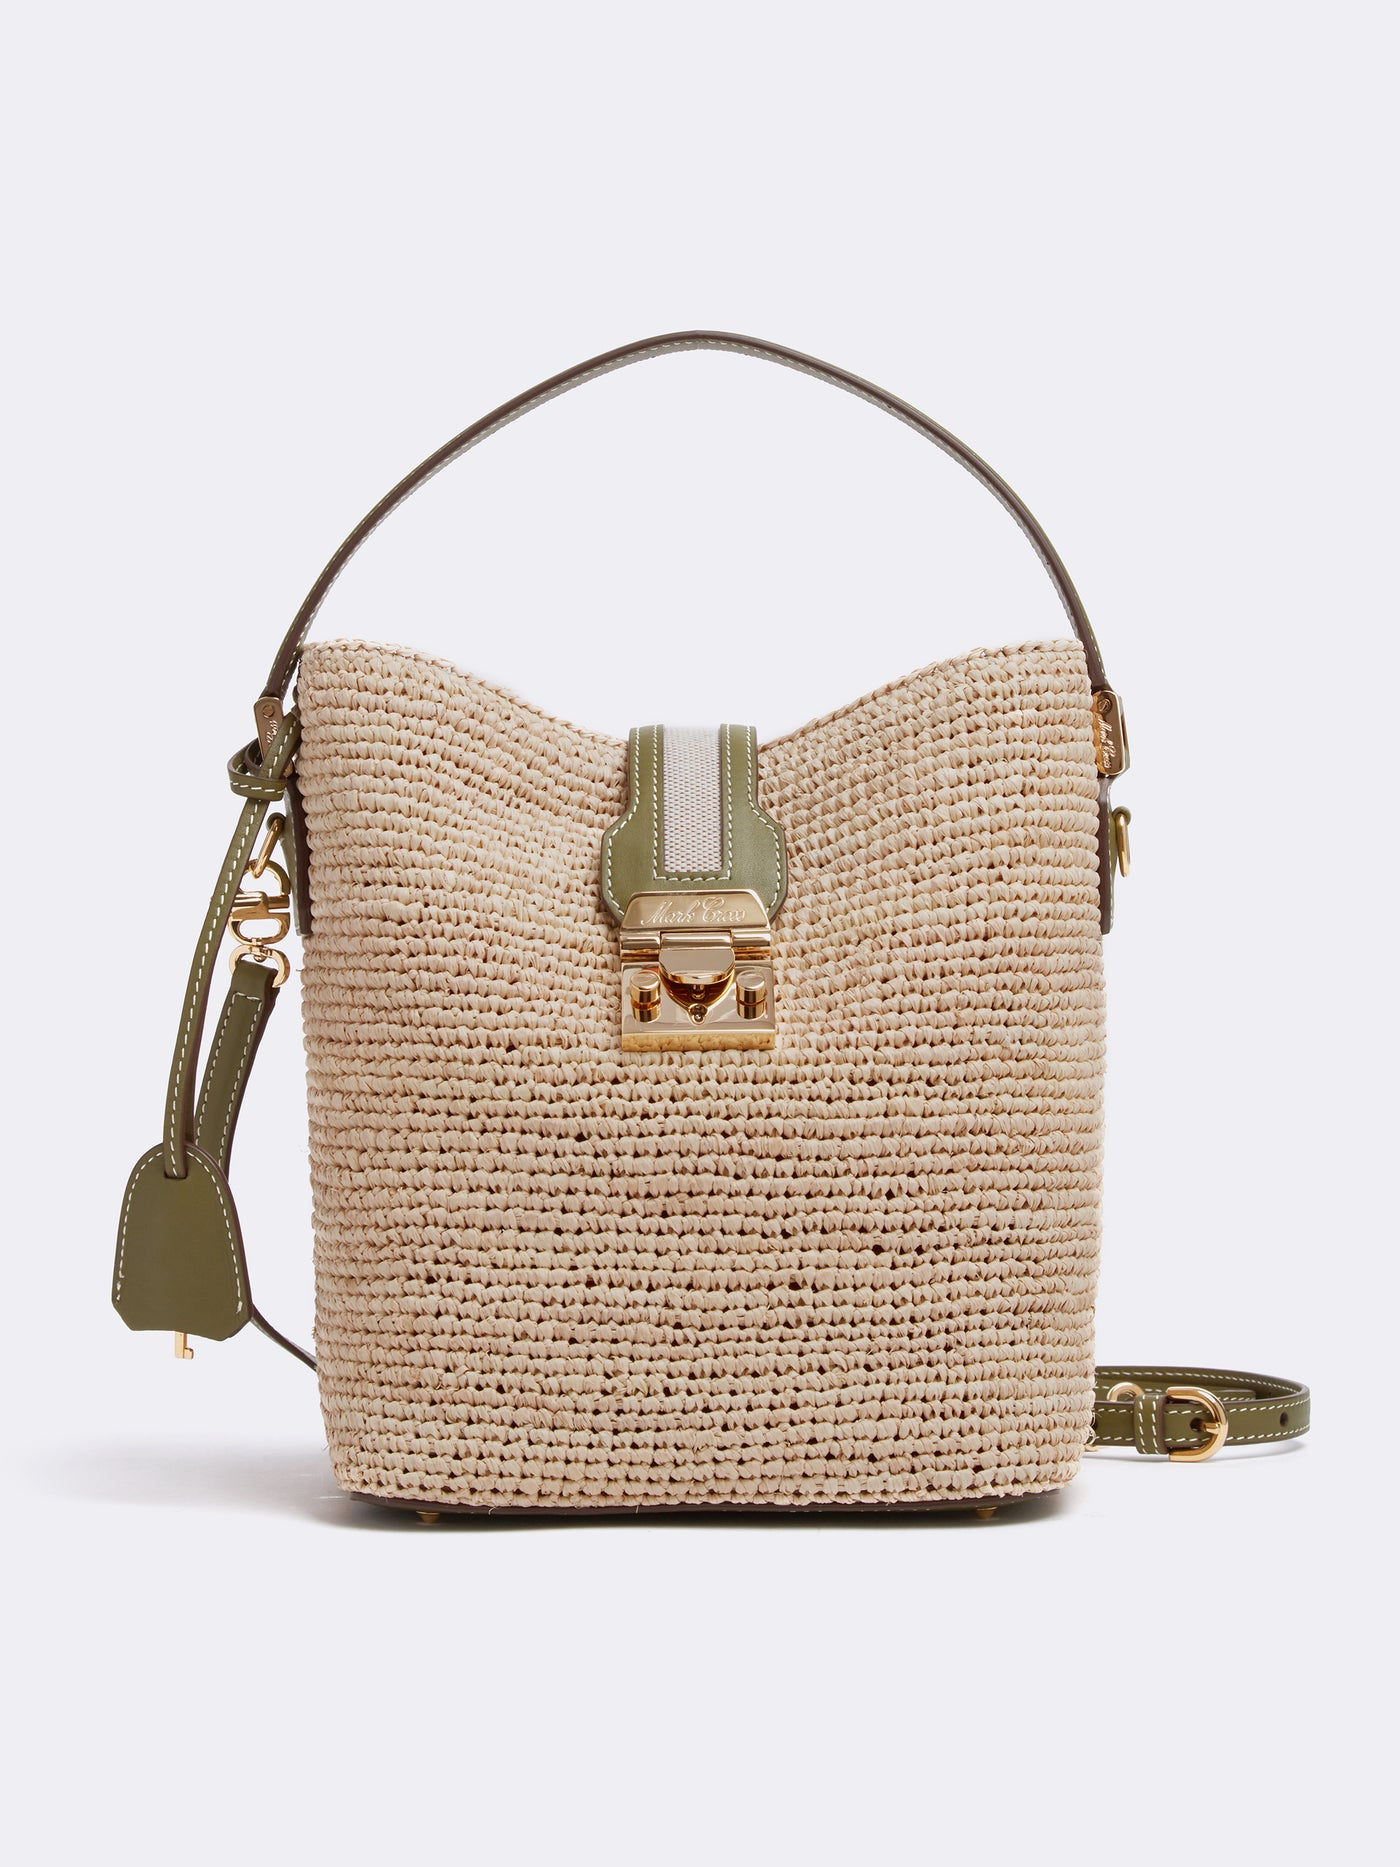 Mark Cross Murphy Raffia & Leather Bucket Bag Tumbled Grain Avocado / Birdseye / Natural Raffia Front